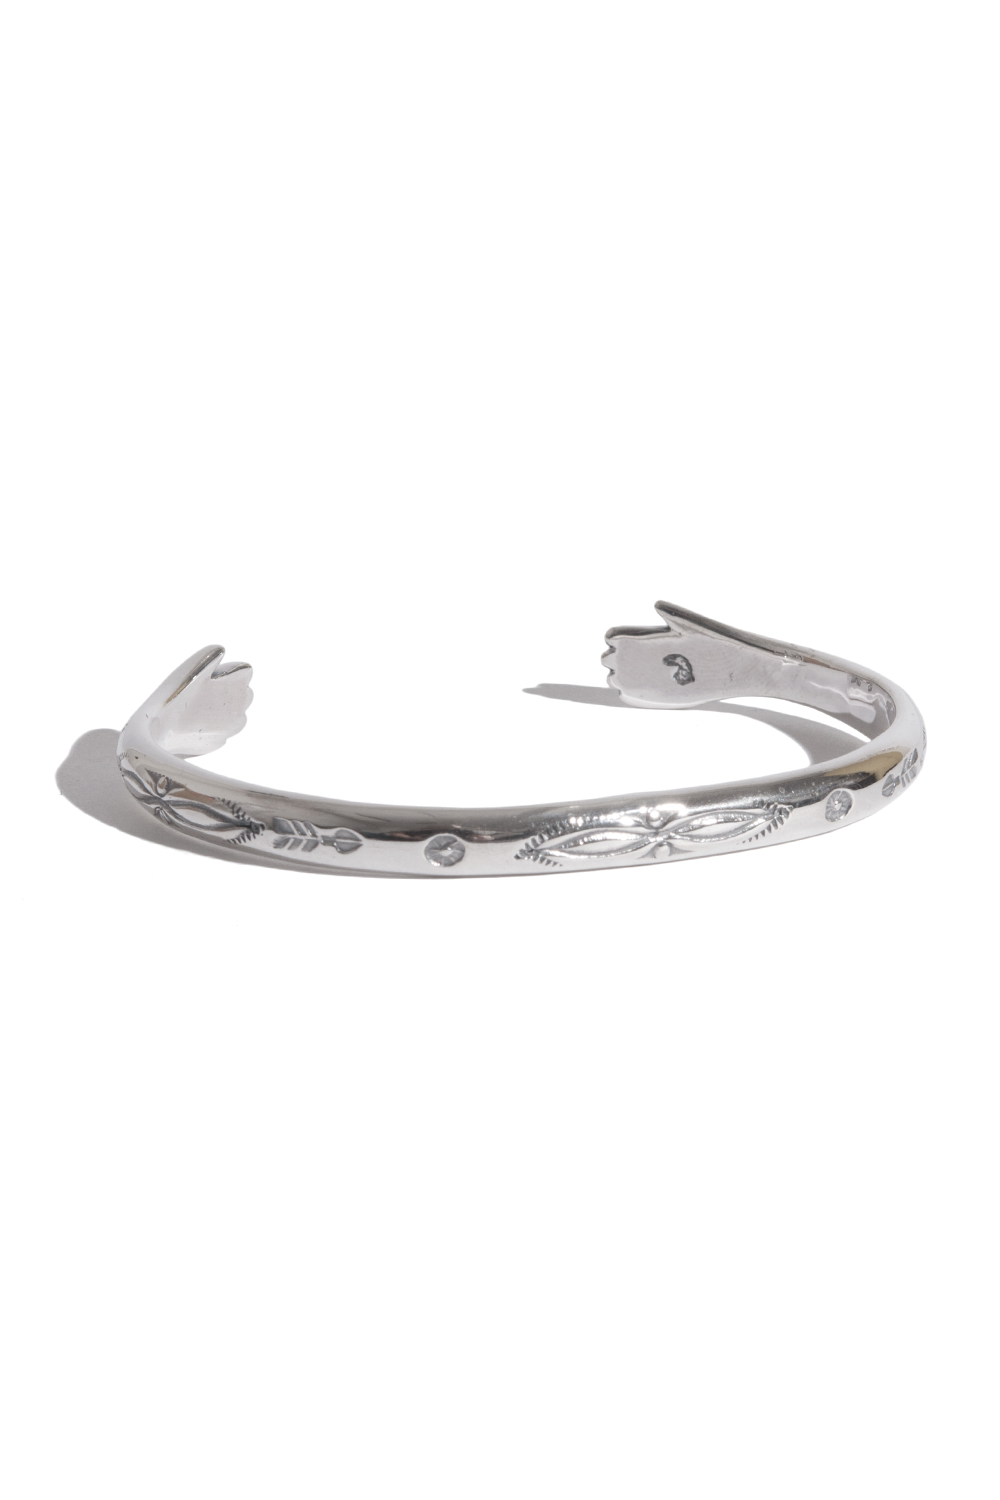 画像1: 【LARRY SMITH】 LOVE HANDS BANGLE (1)